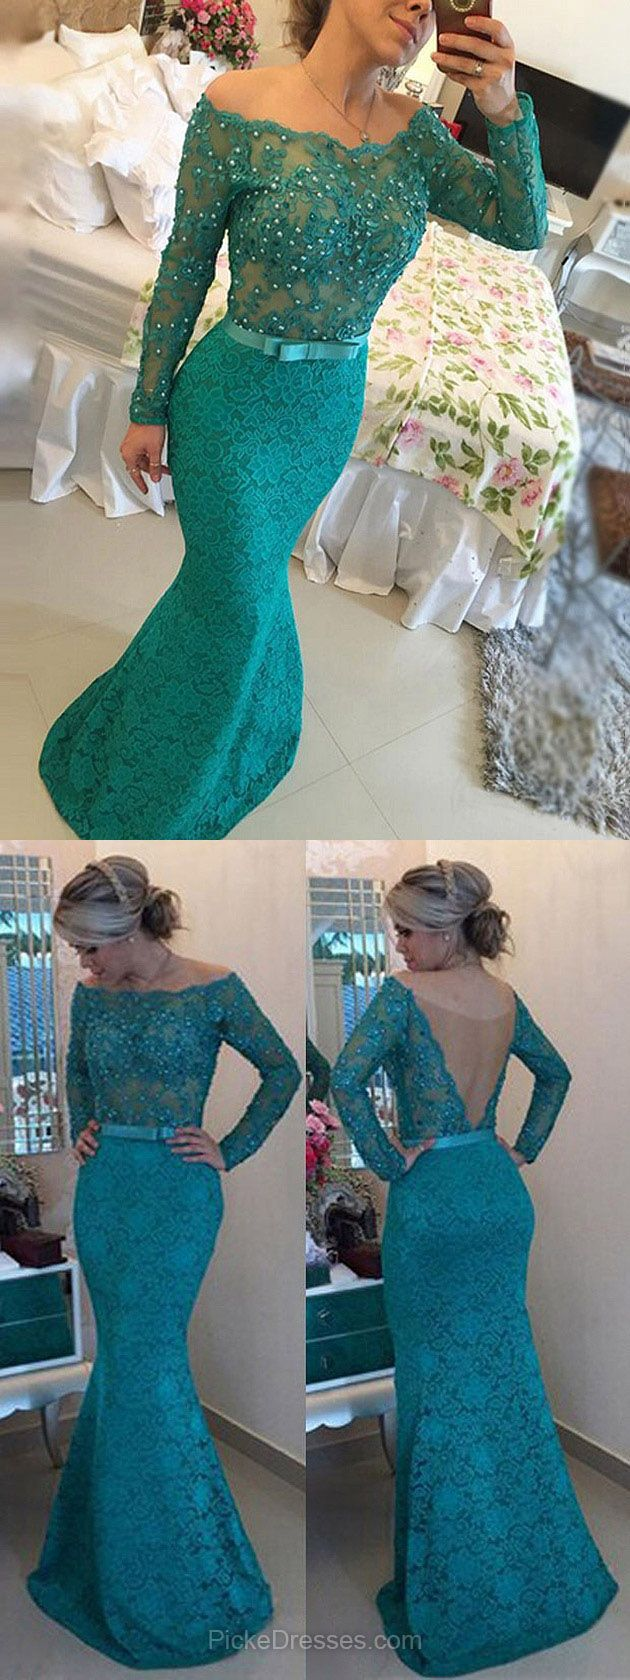 Blue Prom Dresses Lace, 2018 Prom  Dresses For Teens, Trumpet/Mermaid Formal Party Dresses Off-the-shoulder, Tulle Evening Pageant Dresses Long Sleeve Modest